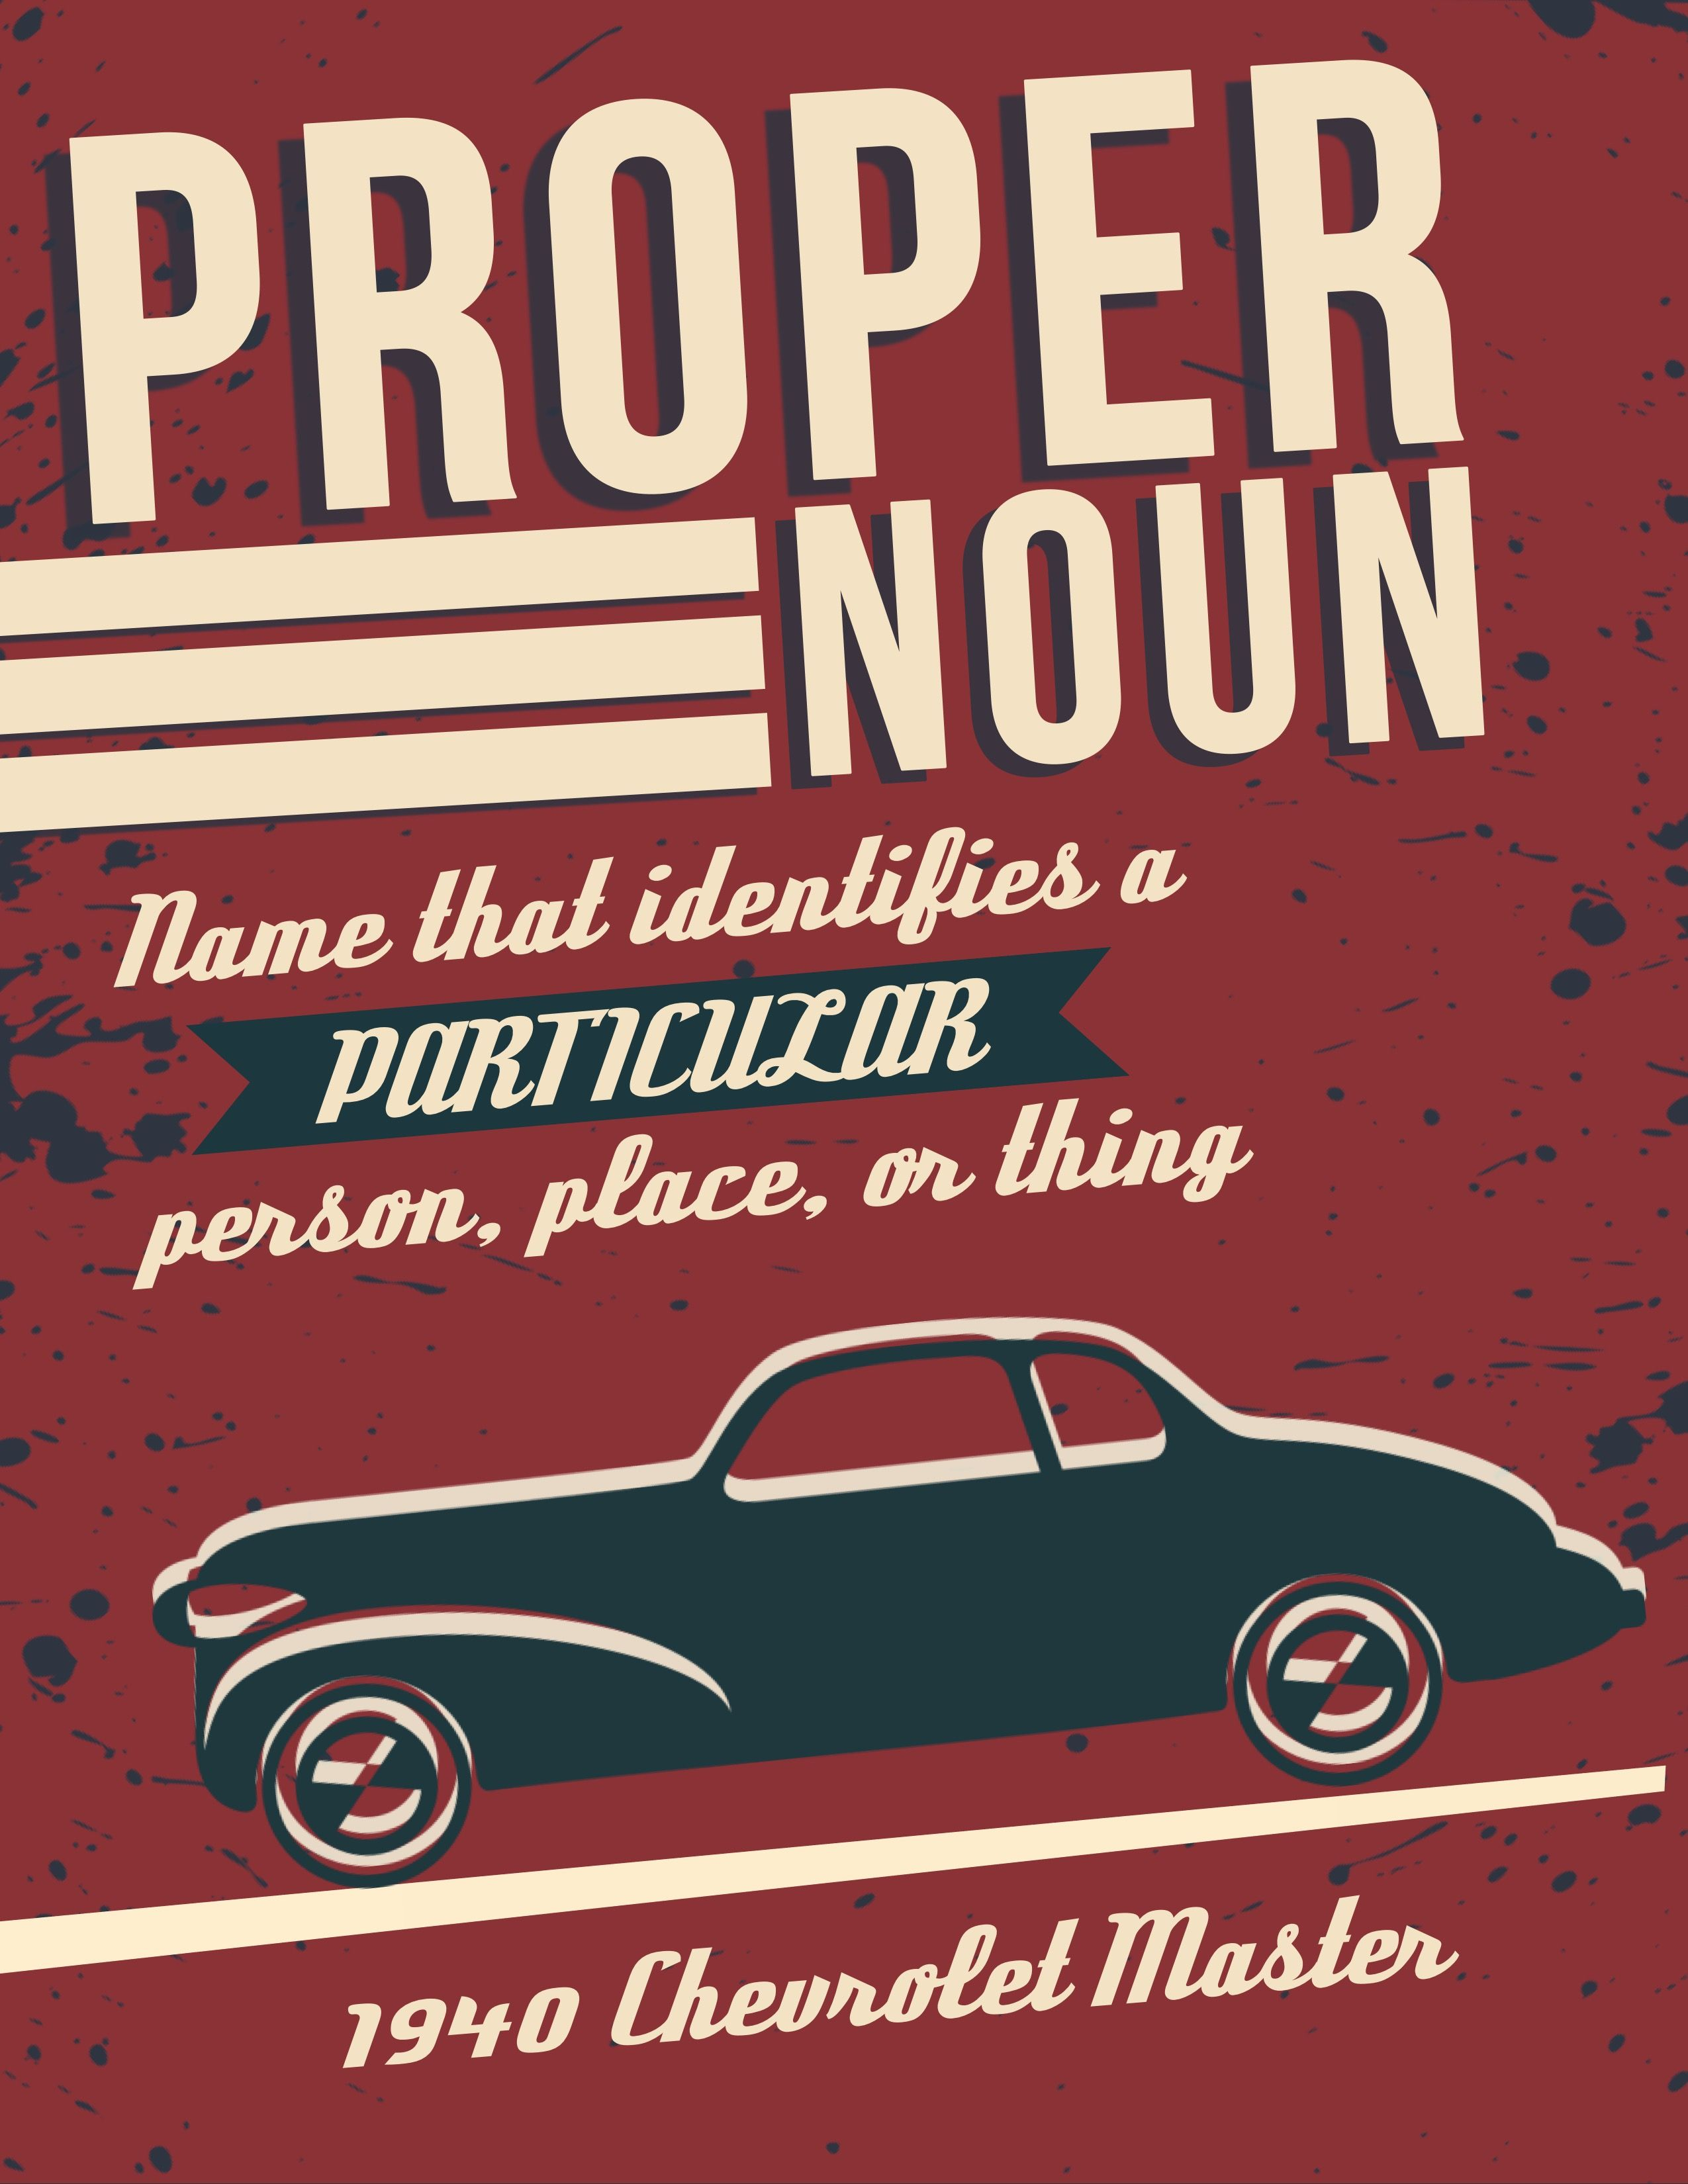 Types Of Nouns Posters In Retro Design For Middle And High